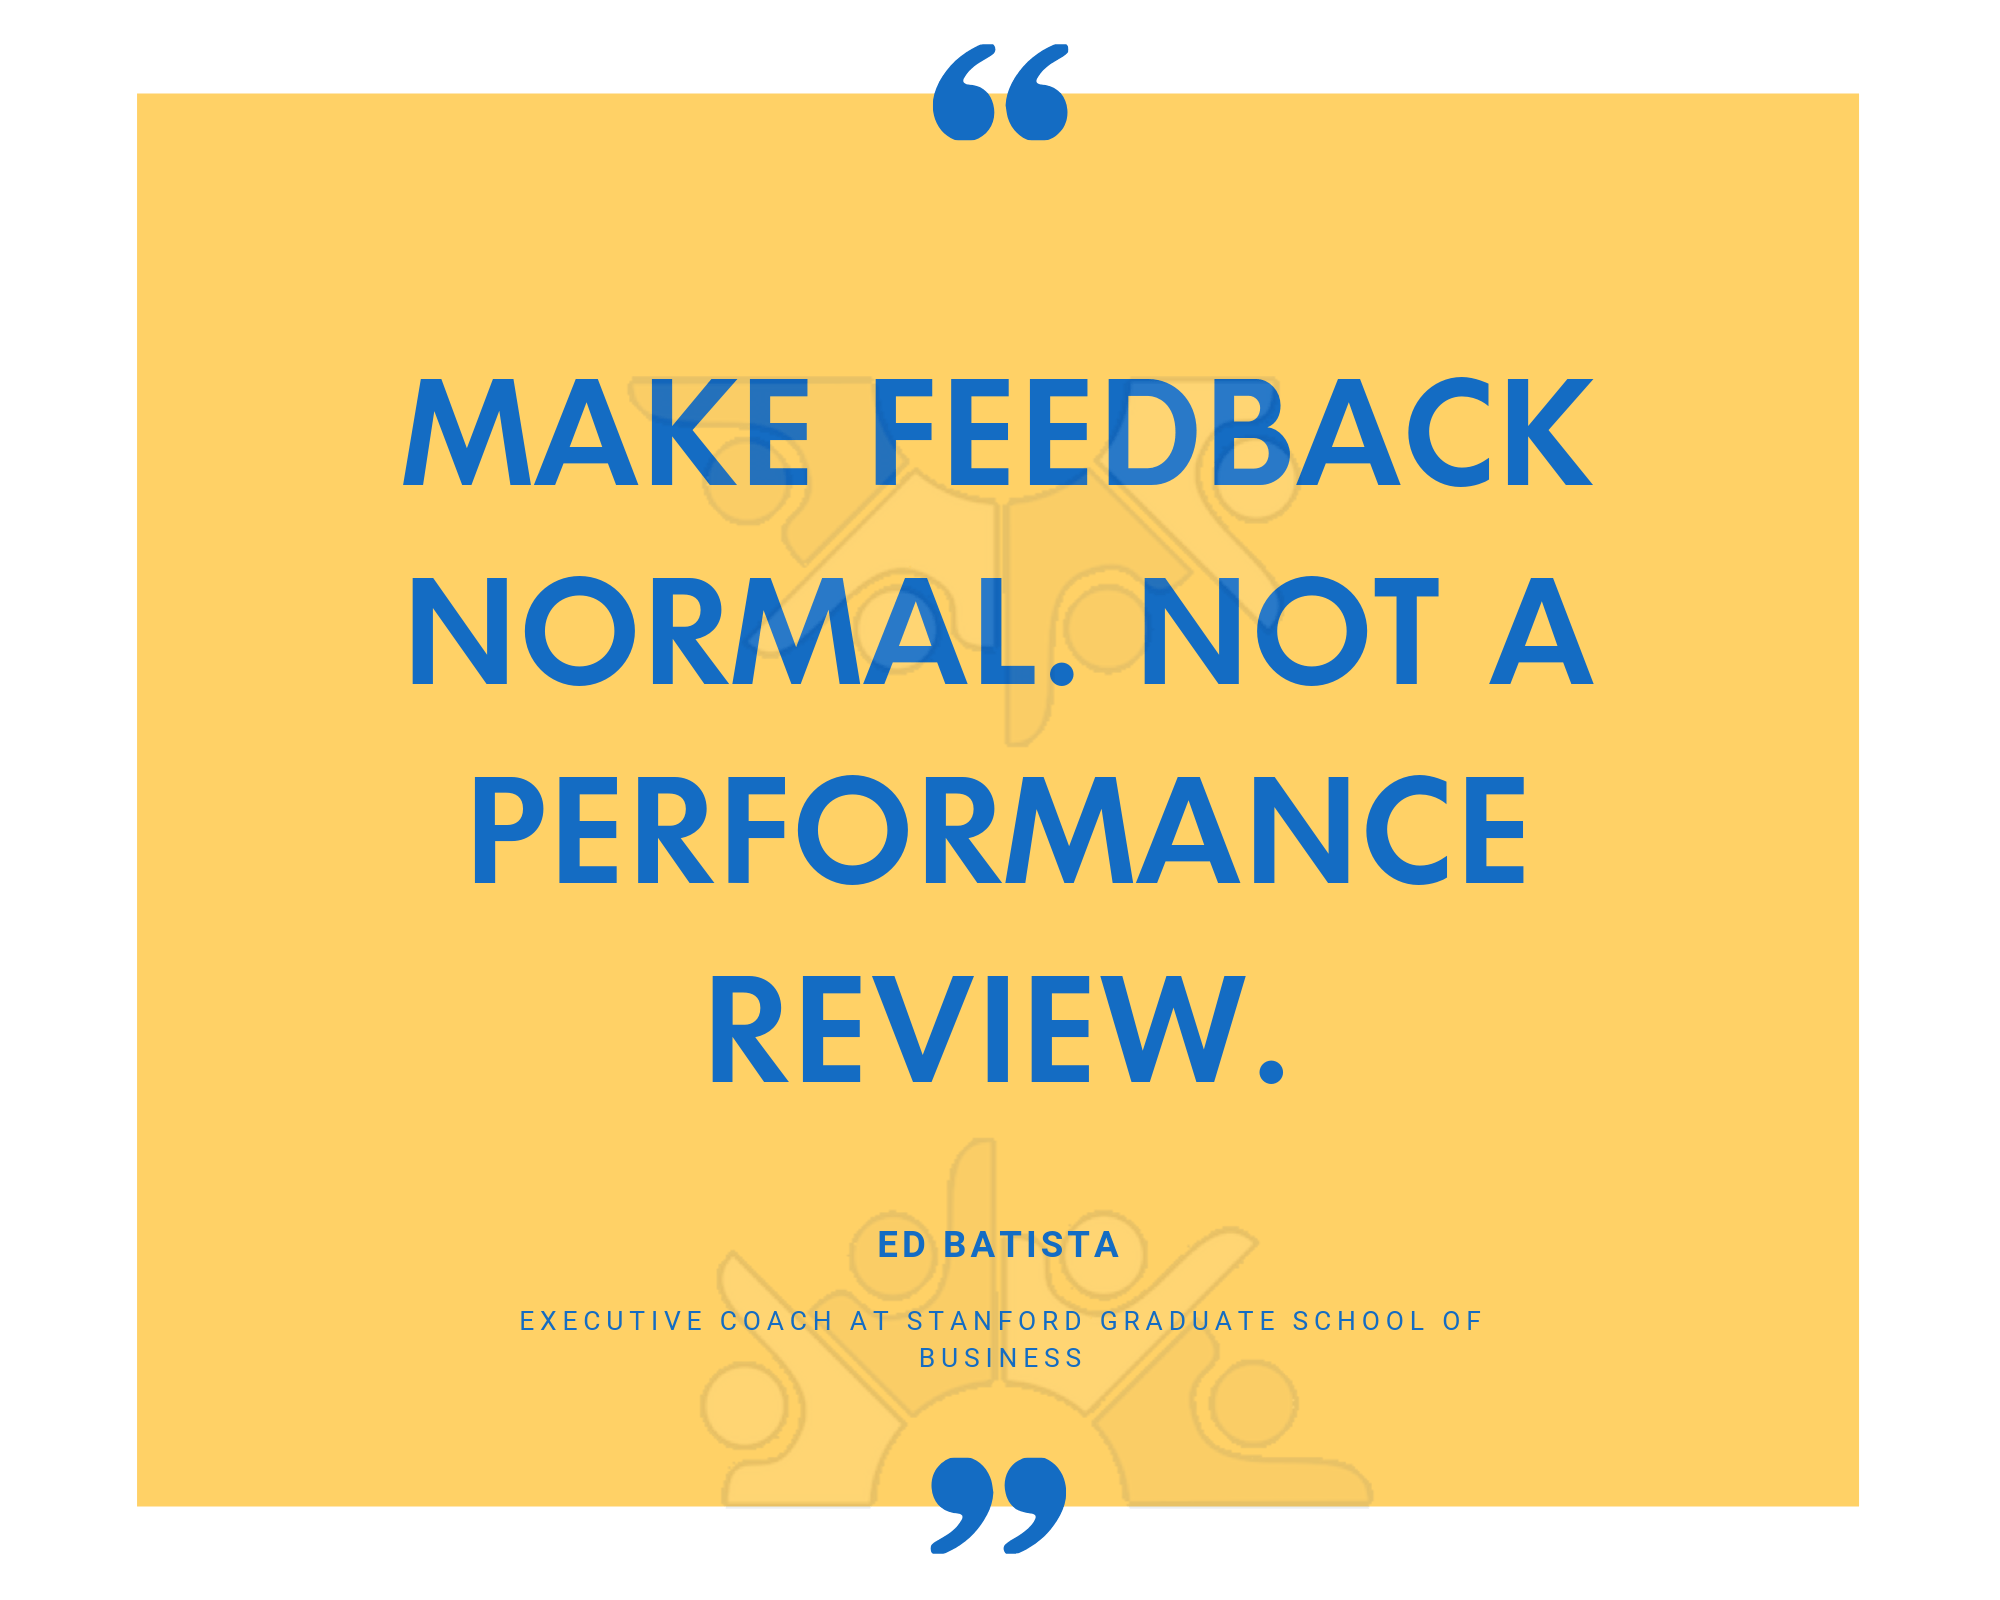 Make feedback normal. Not a performance review.